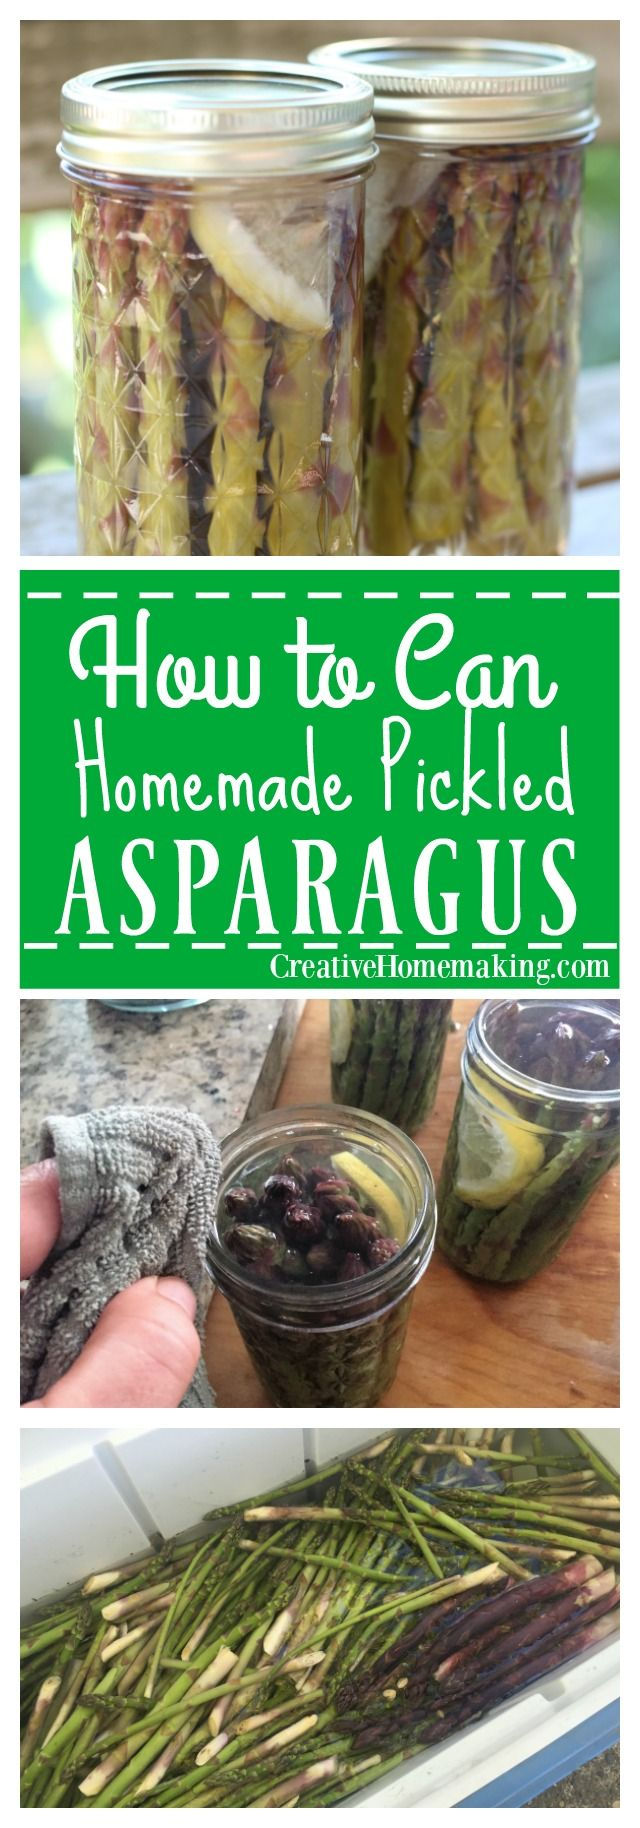 How to can homemade pickled asparagus.